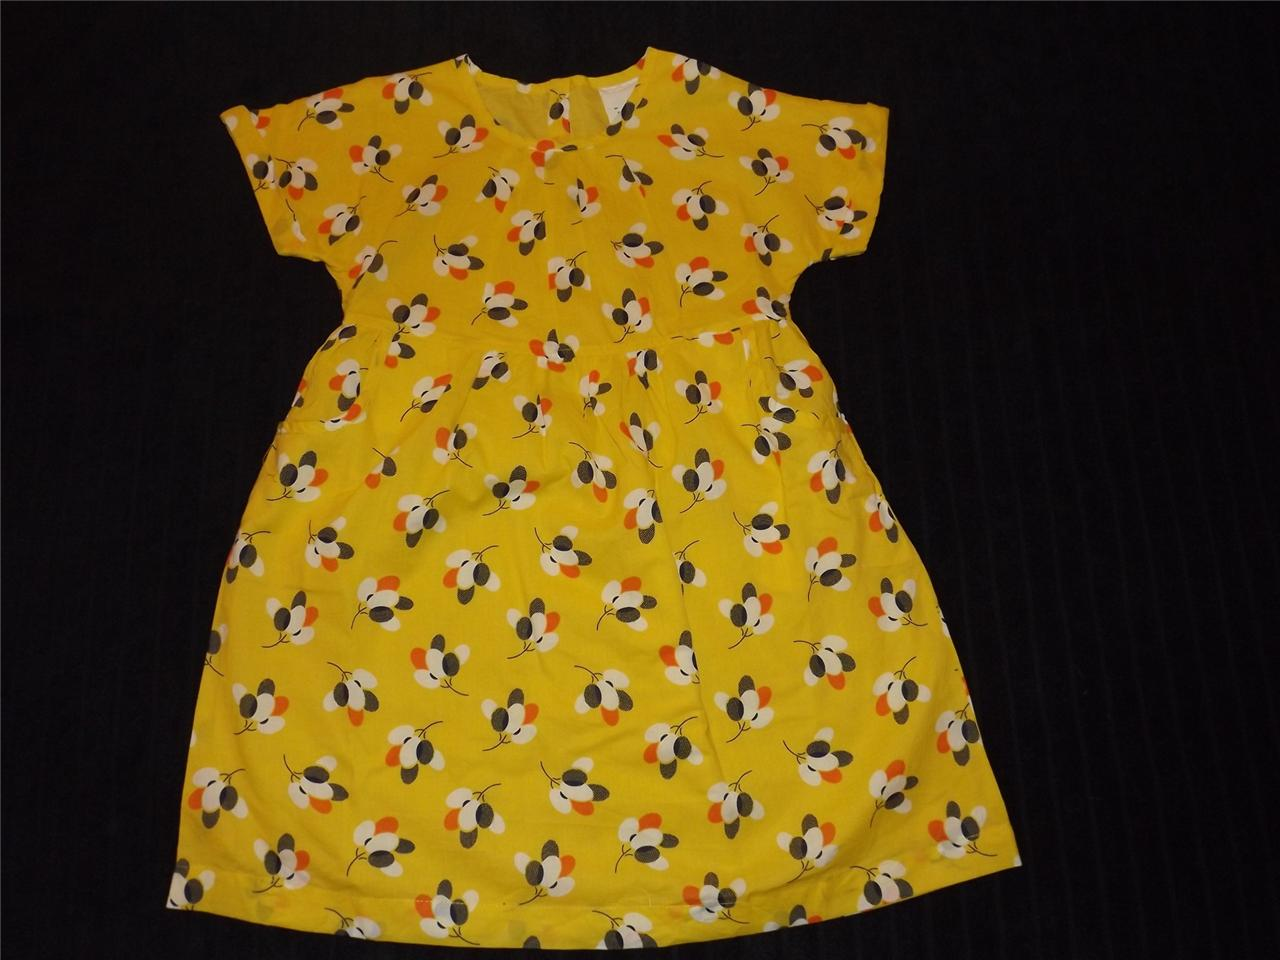 Brand new mini boden 2013 easy printed dress in daffodil for Mini boden england